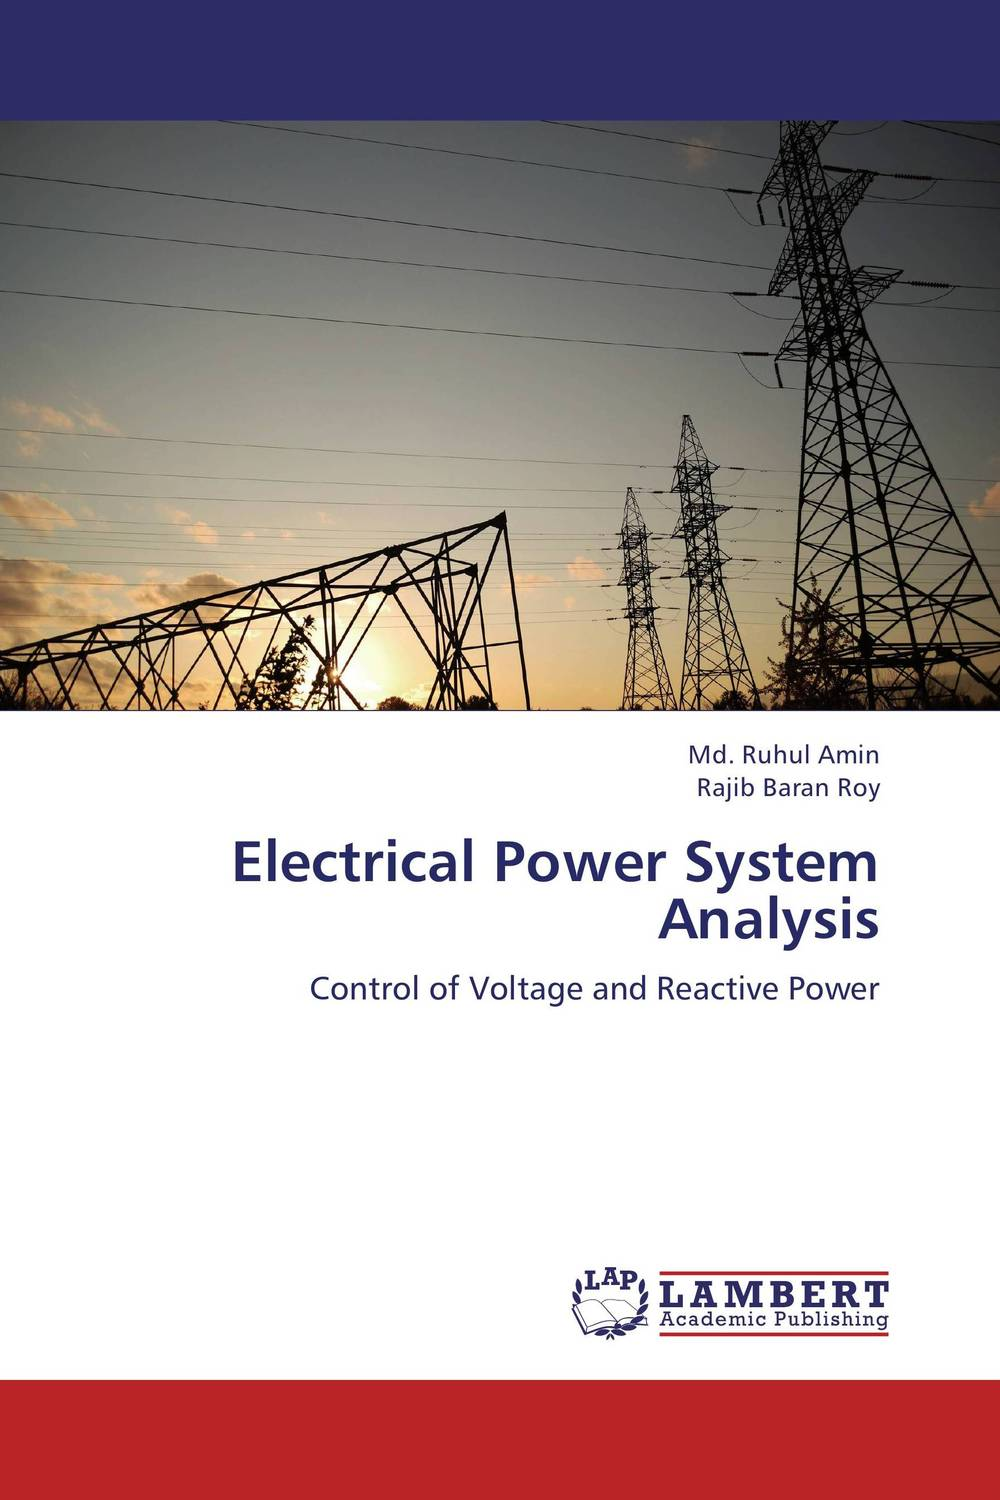 Electrical Power System Analysis analysis of hydrodynamic bearings by electrical analogy